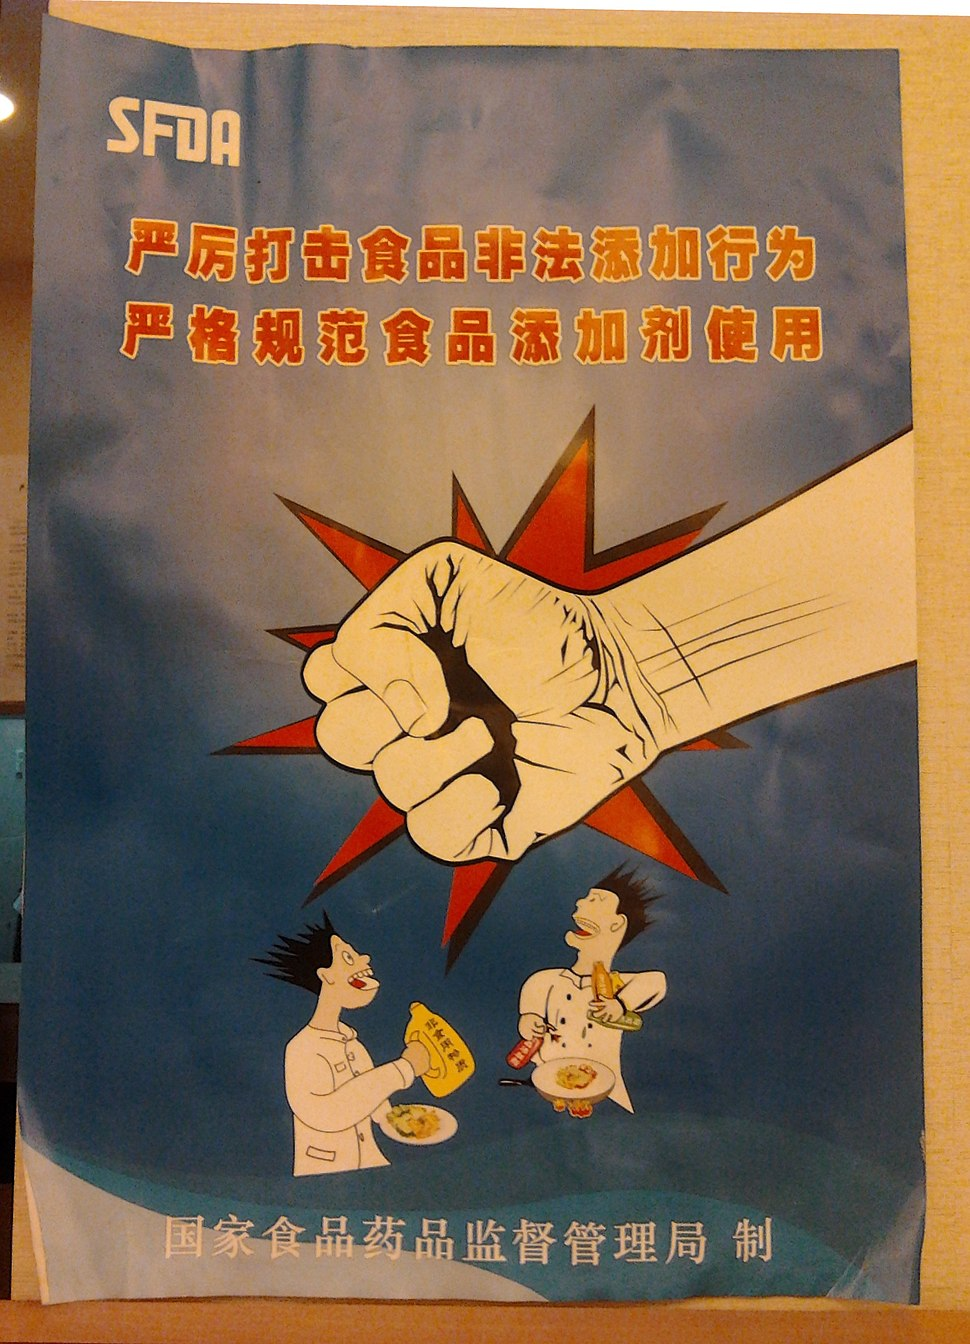 Chinese Food Safety Poster